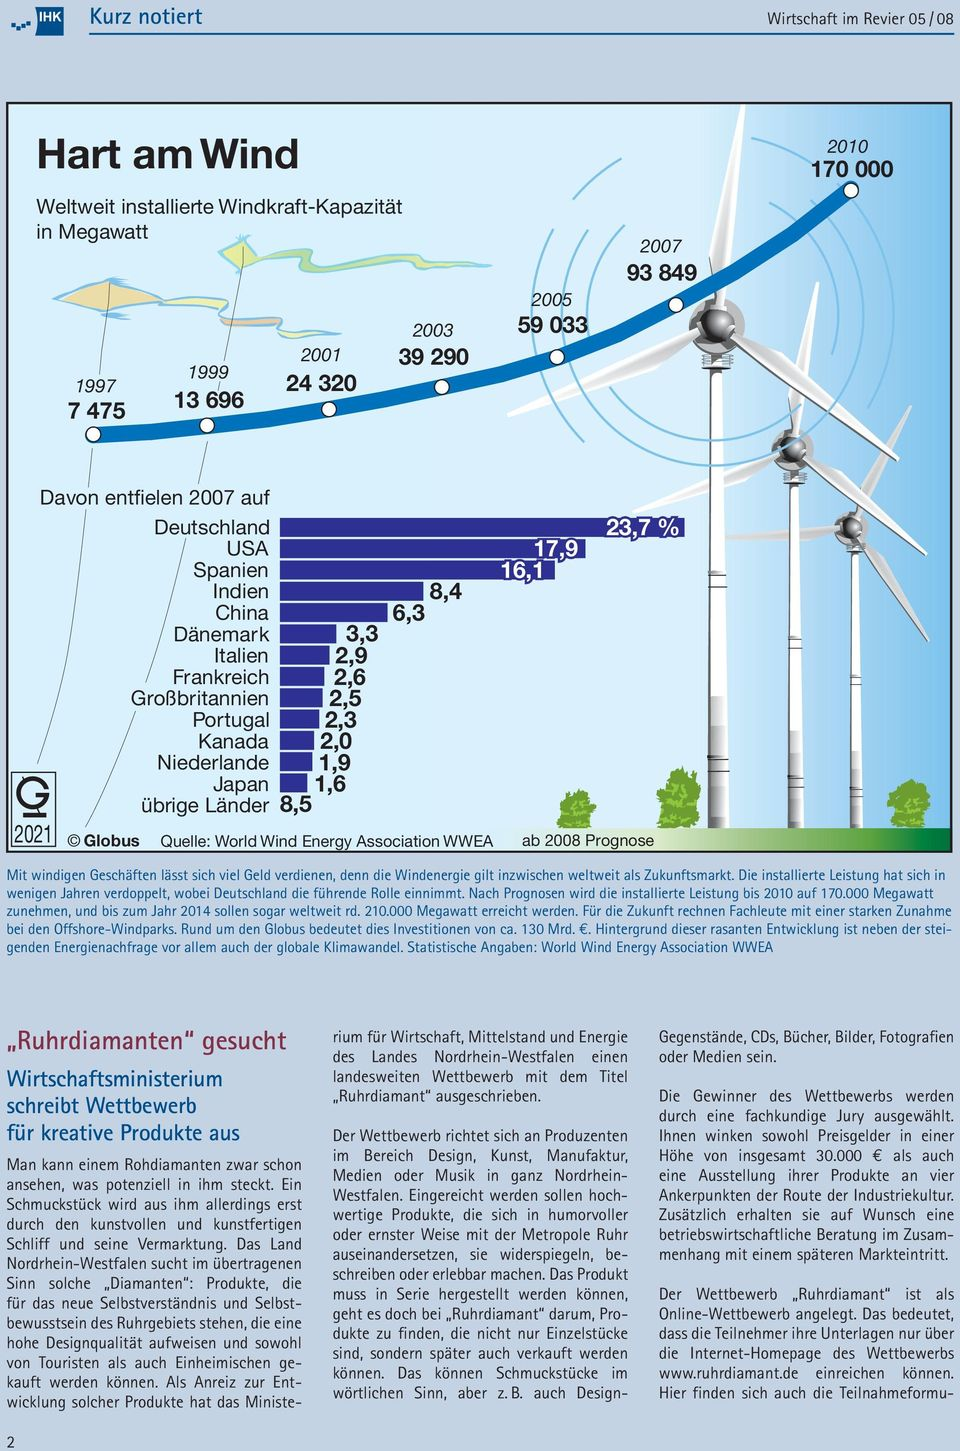 6,3 Quelle: World Wind Energy Association WWEA 17,9 16,1 23,7 % ab 2008 Prognose Mit windigen Geschäften lässt sich viel Geld verdienen, denn die Windenergie gilt inzwischen weltweit als